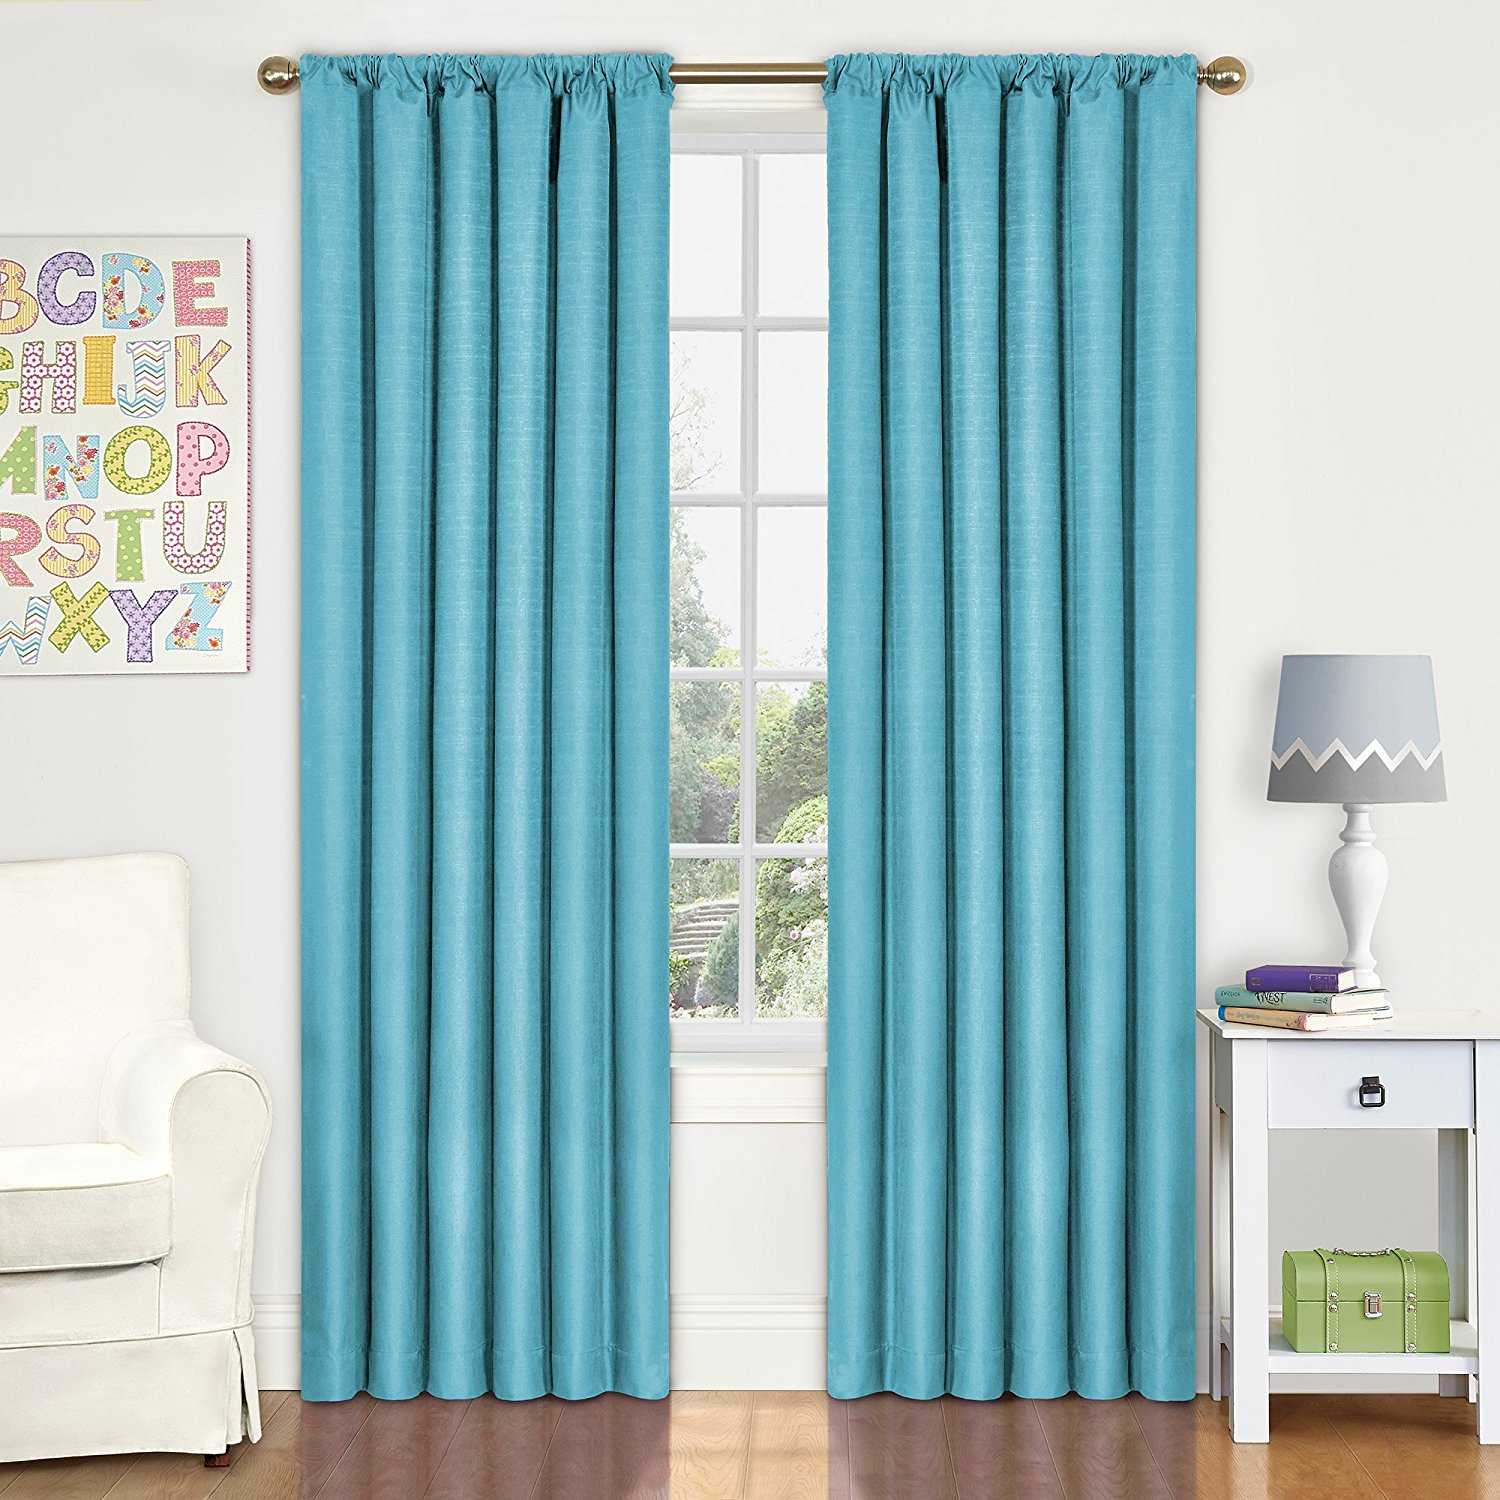 grommet inch curtain teal curtains patterned store single panel sets stunning home shops panels tall white at pack full x of size drapes window